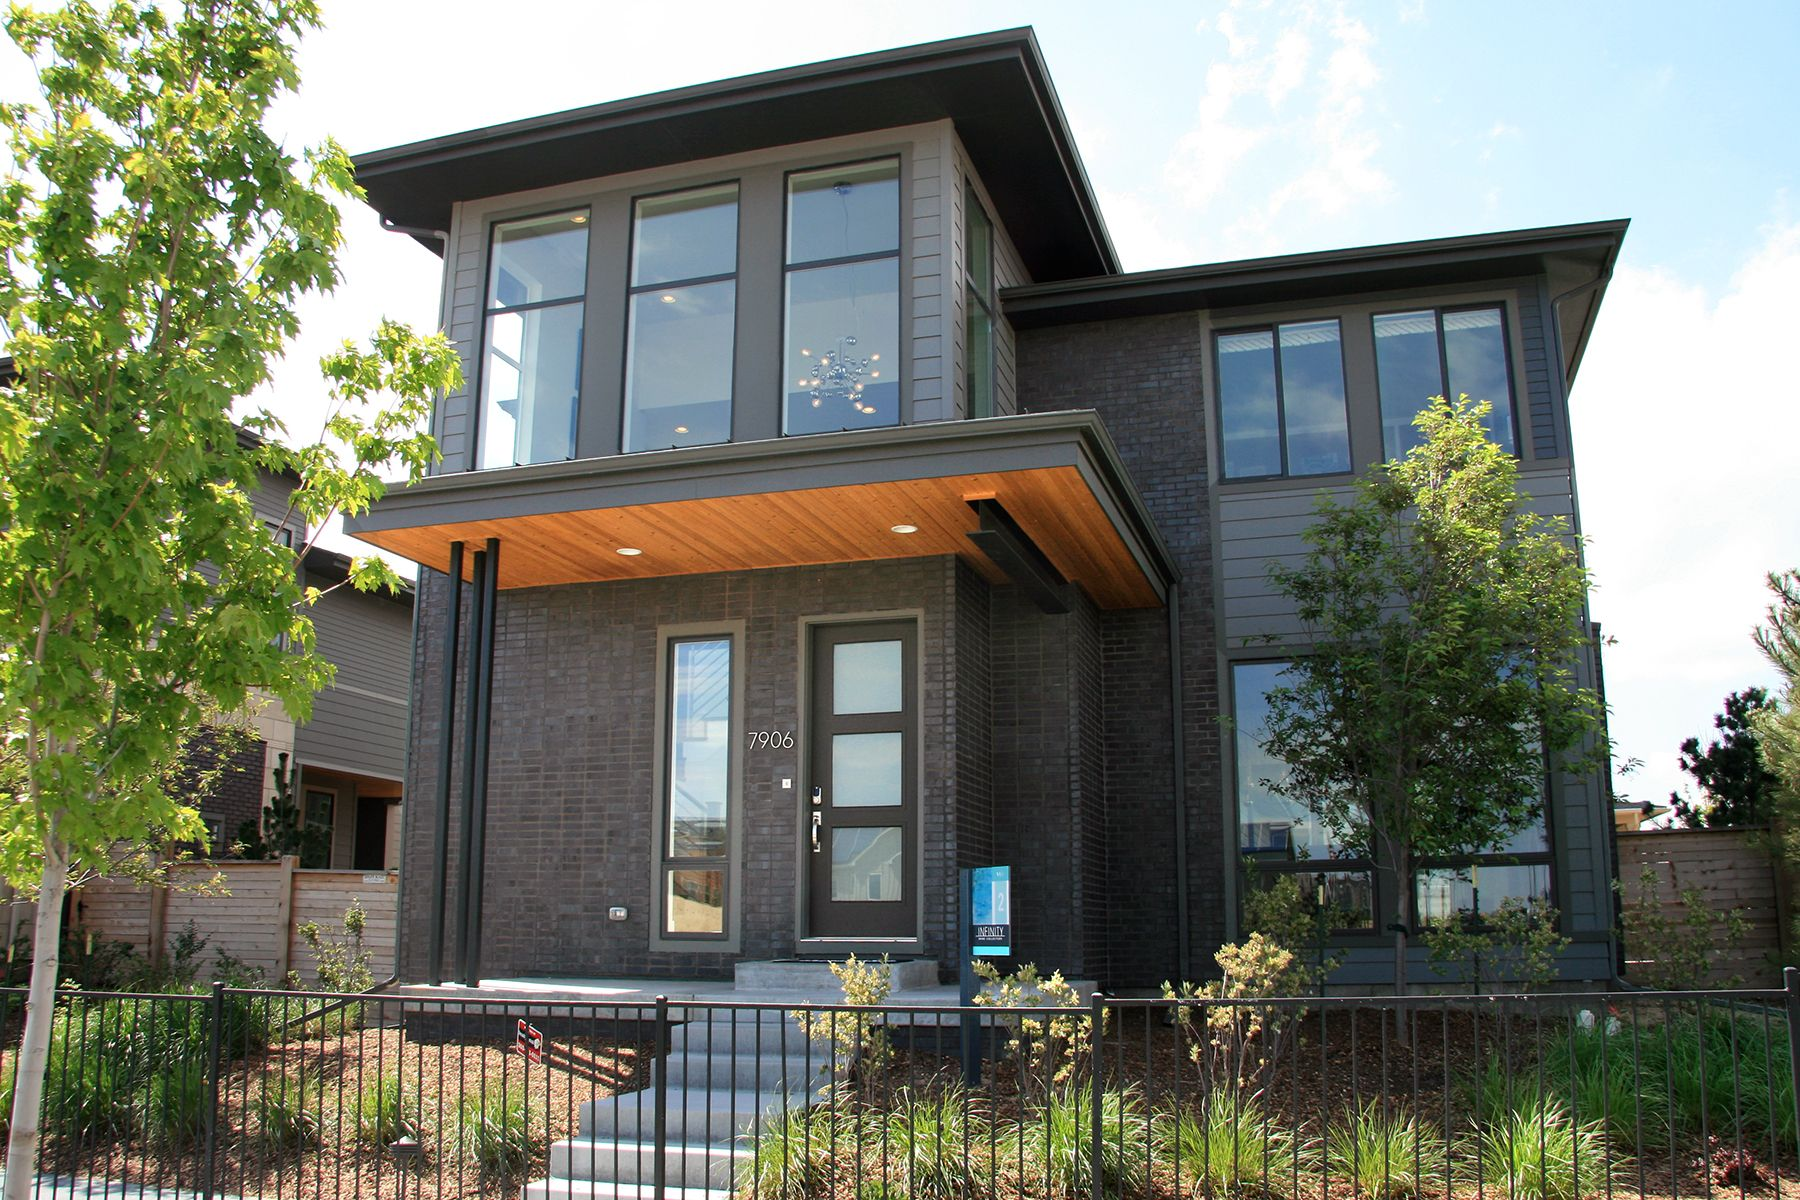 Summit brick company black diamond brick on modern homes at the vue at stapleton denver co clean monochromatic dark brick with sheen